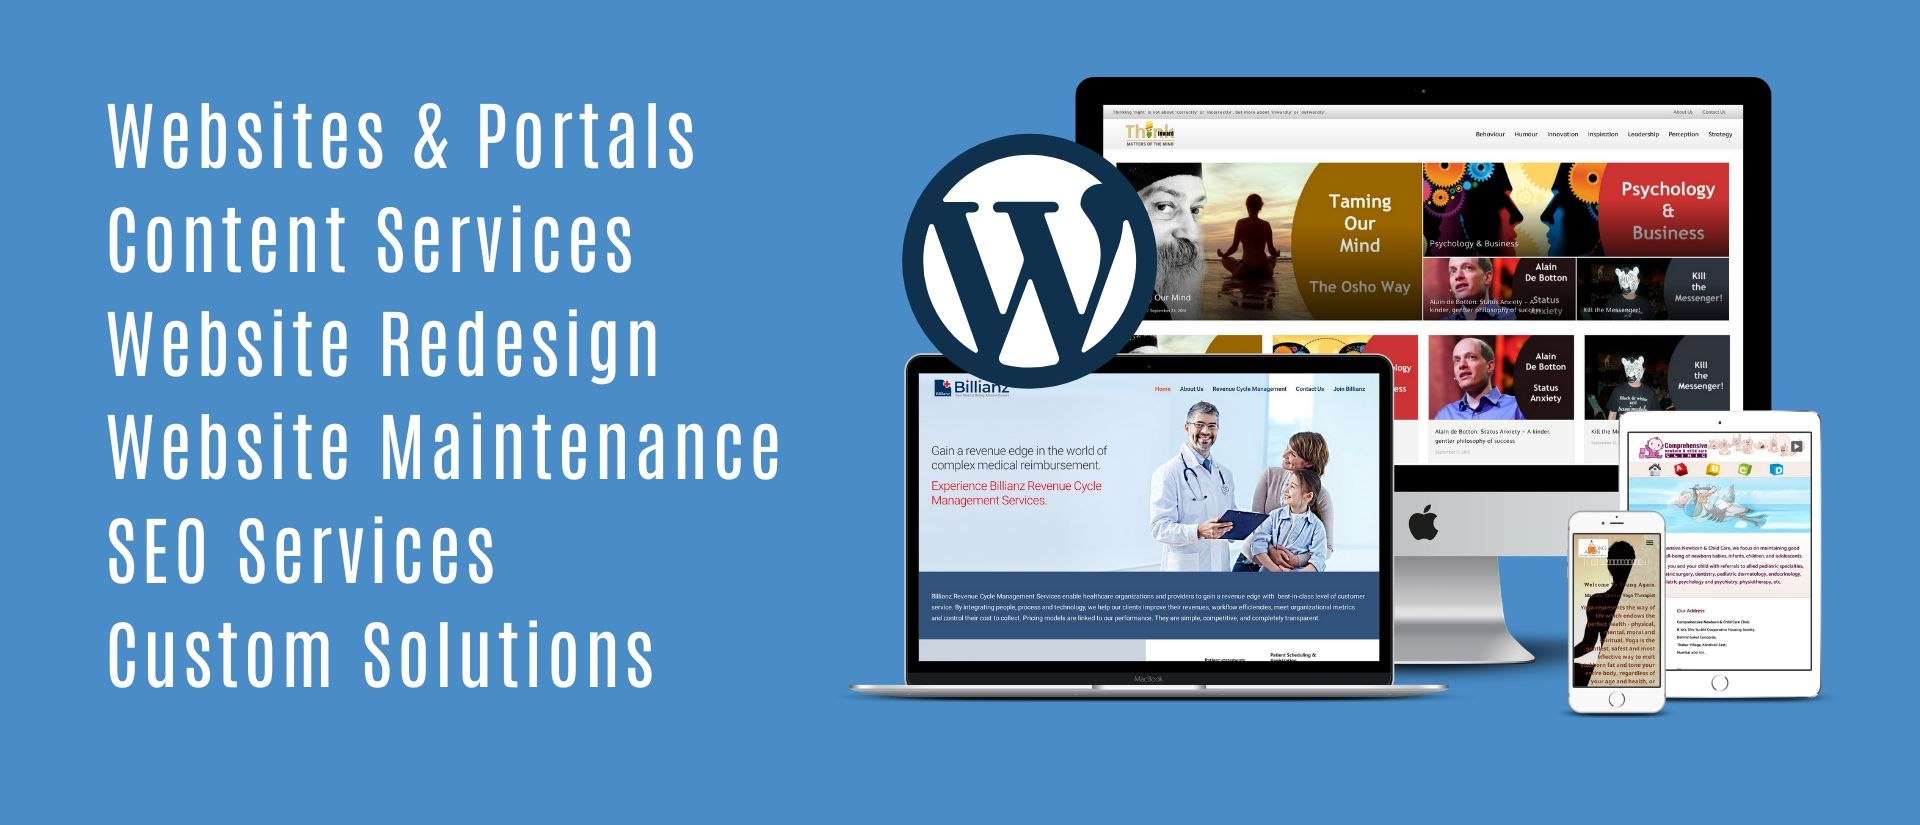 This is the main banner page showing all services offered by eScalent - Website Design Agency in India